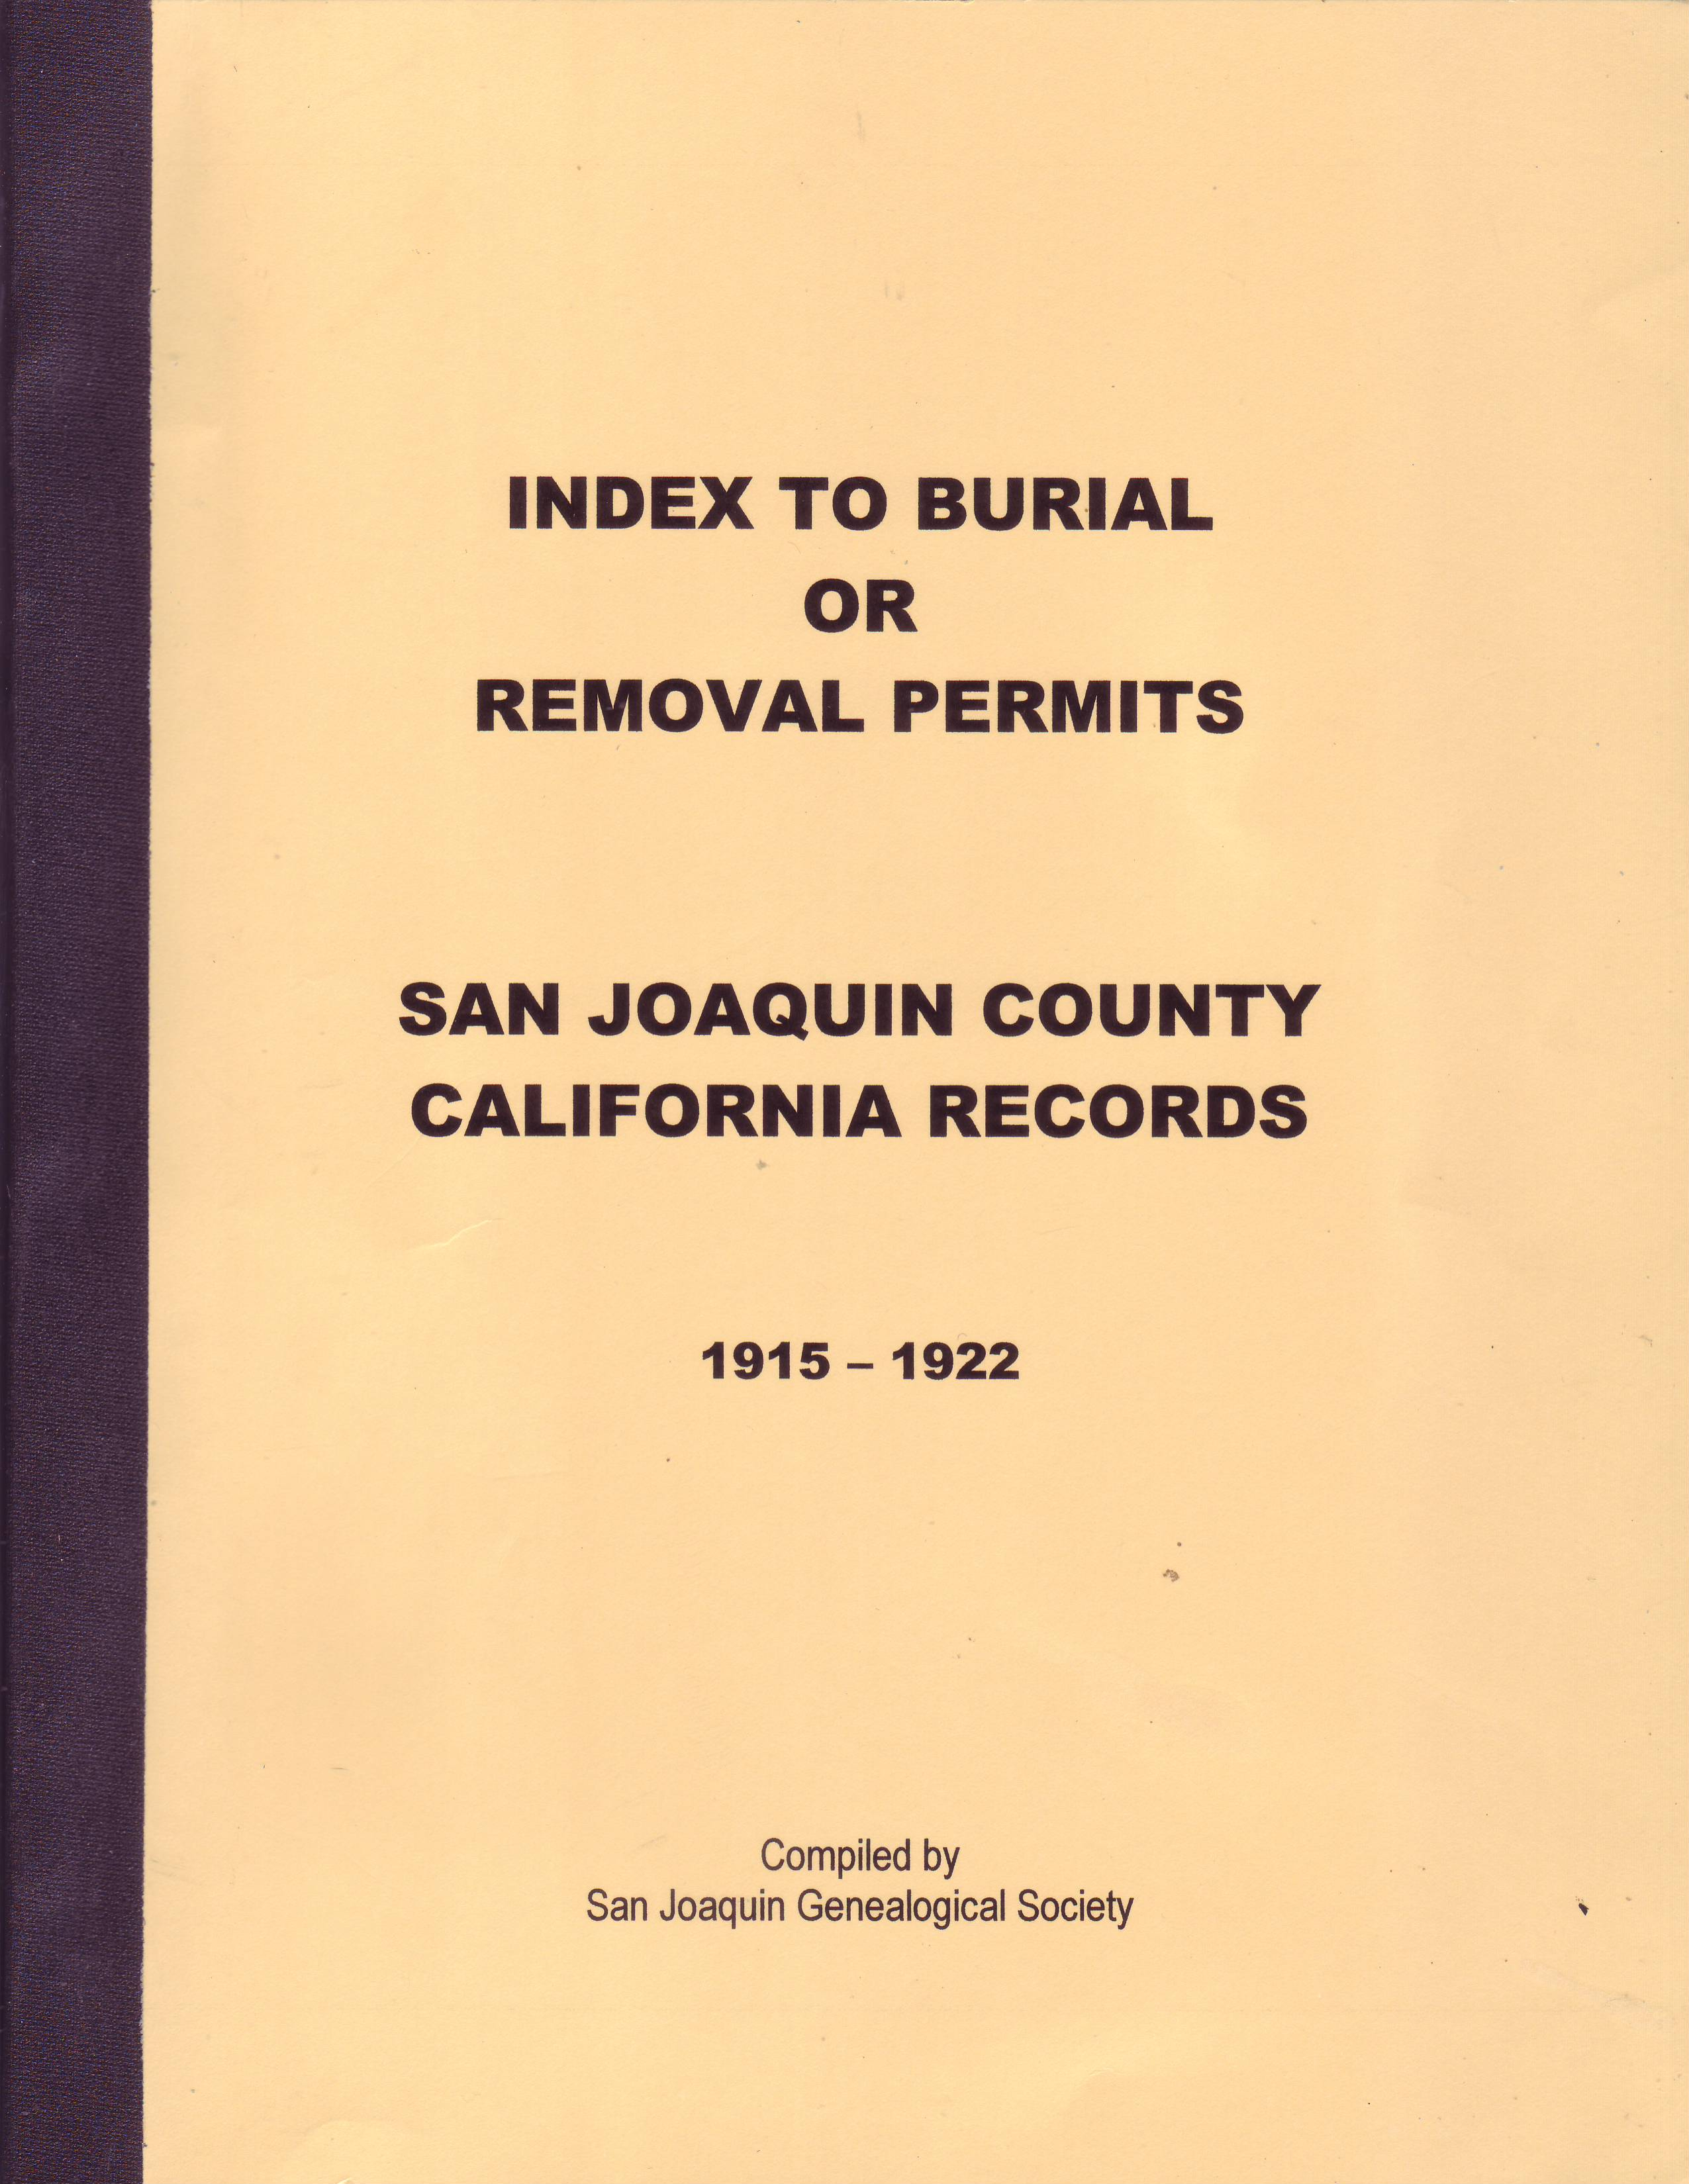 Index to Burial or Removal Permits, San Joaquin County California Records, 1915–1922